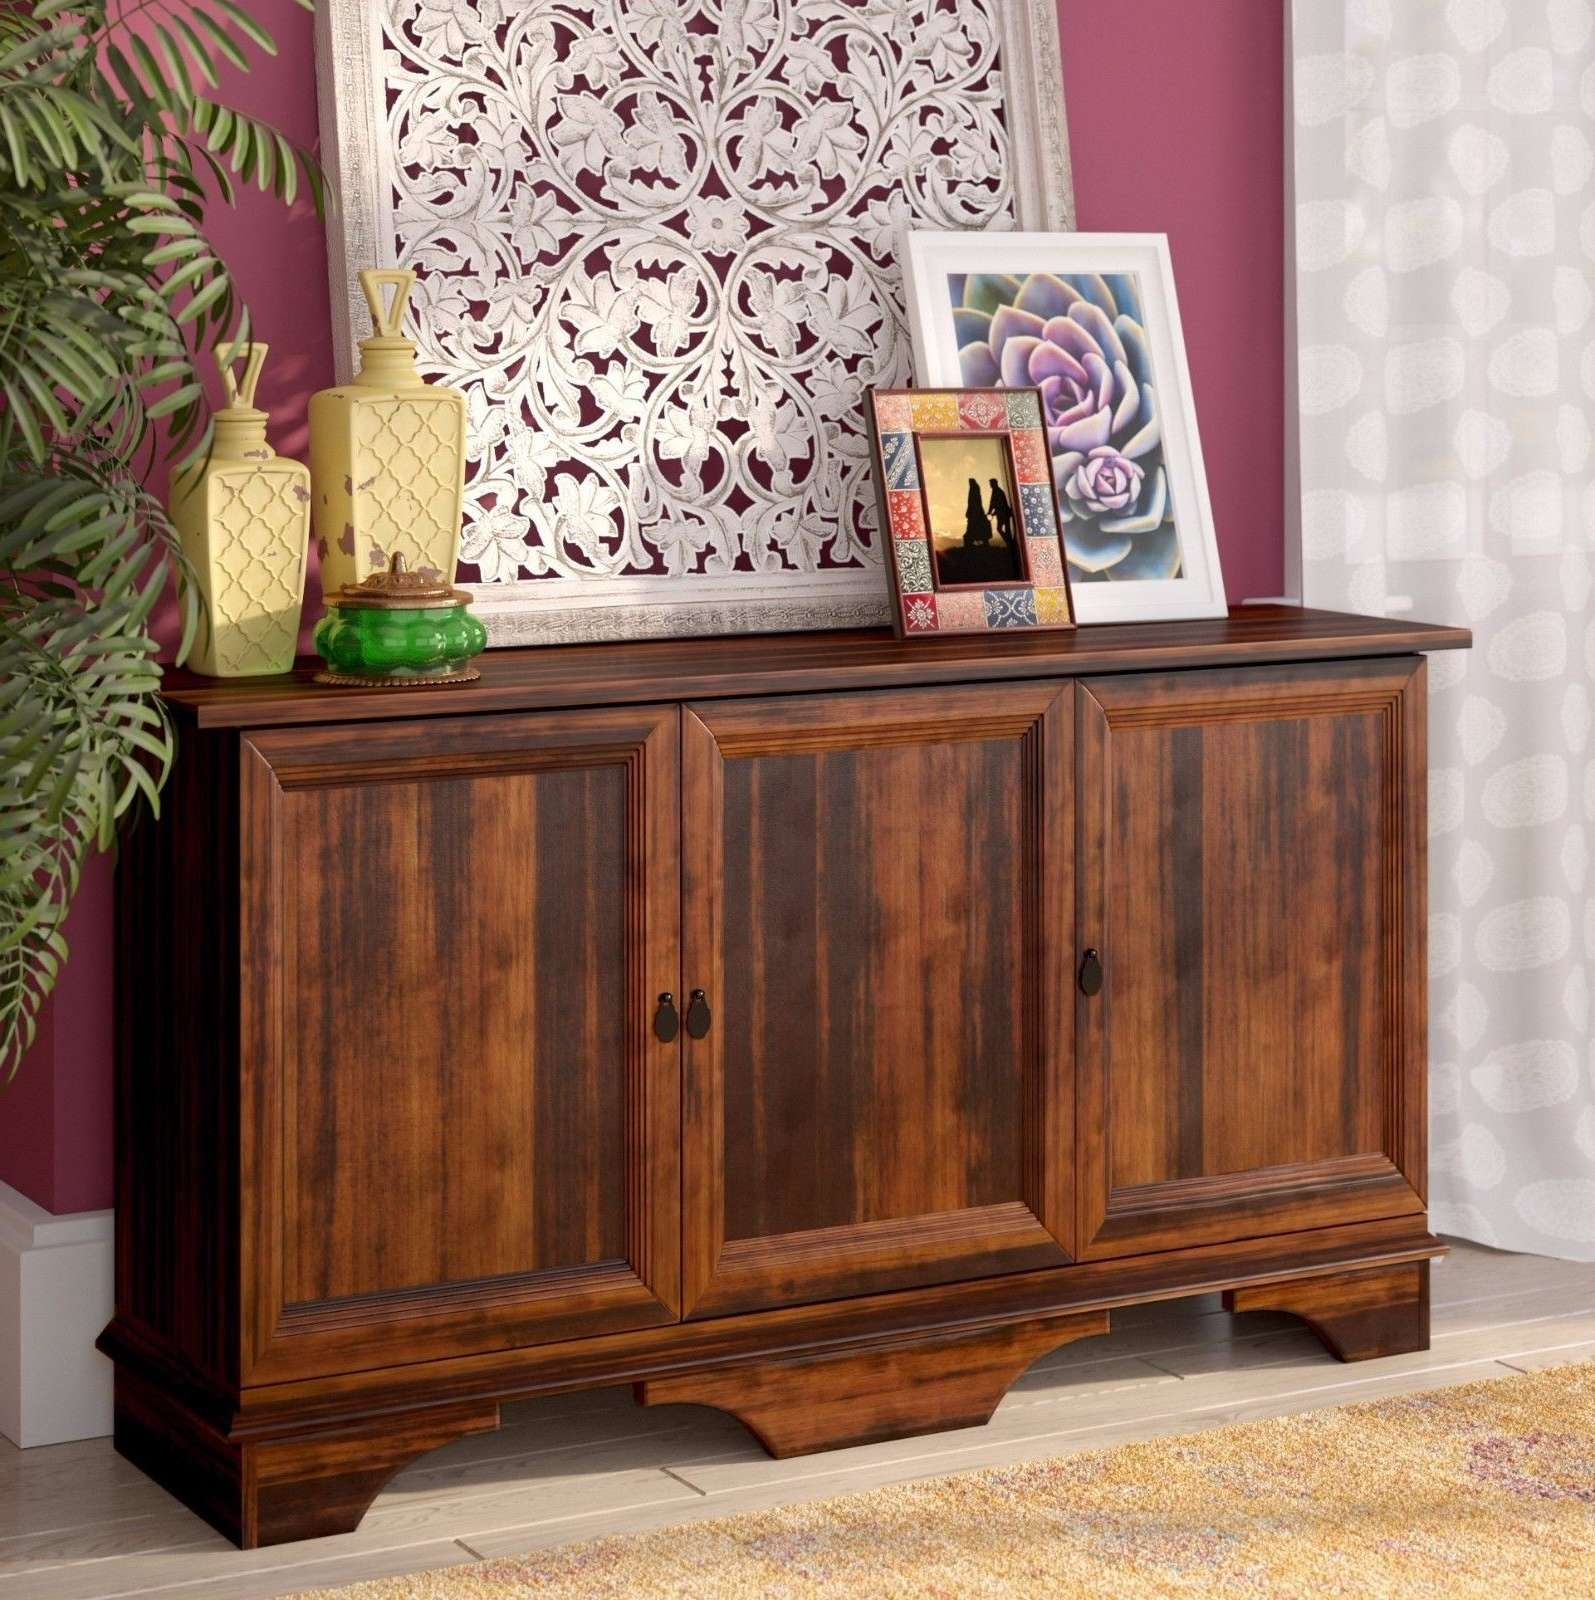 Rustic/primitive Sideboards And Buffets | Ebay Intended For Rustic Sideboards Furniture (View 14 of 20)